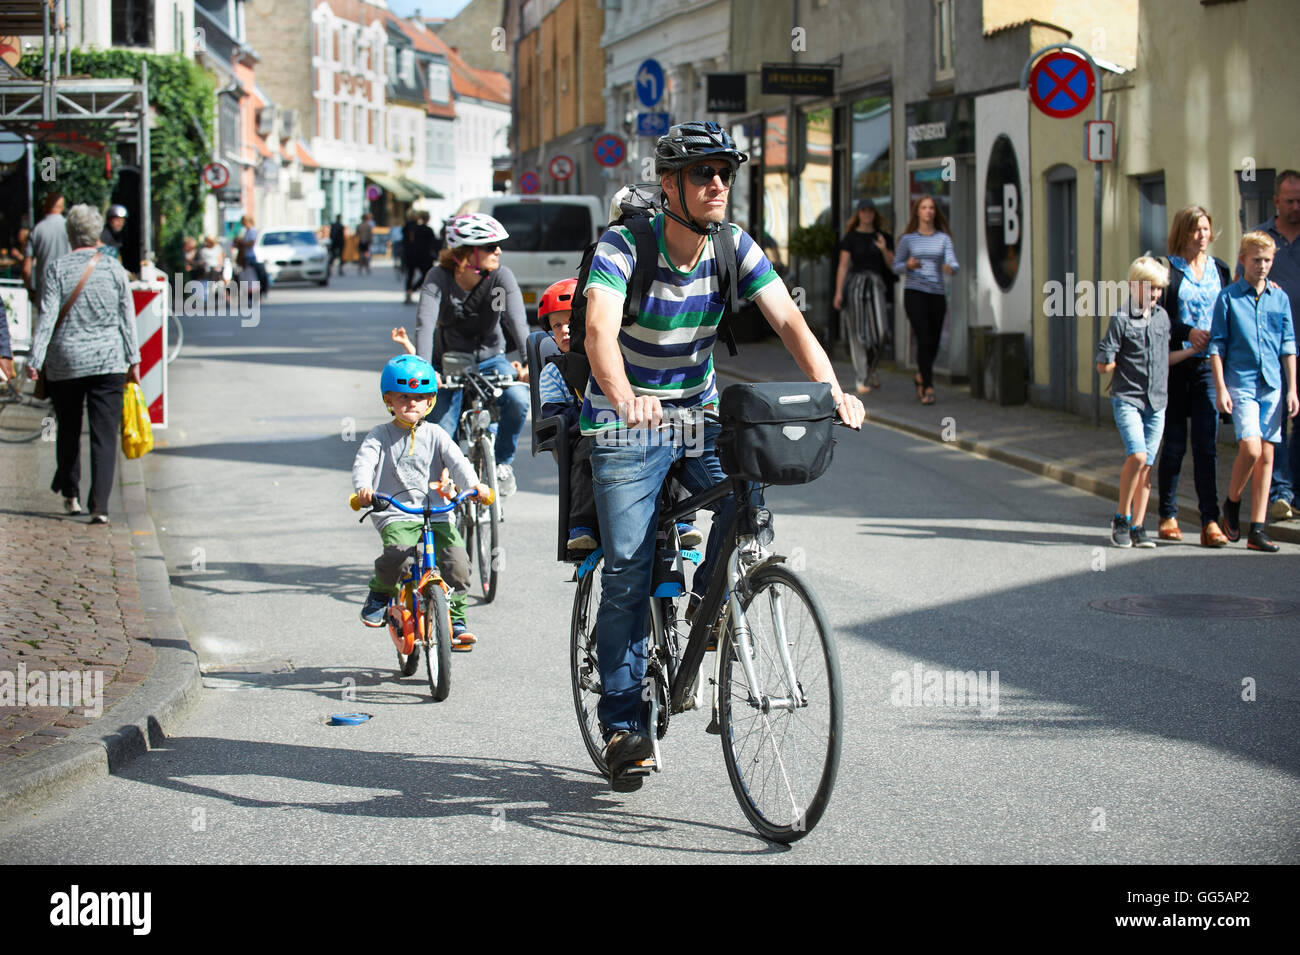 Cycling family in Graven, Aarhus City, Denmark - Stock Image